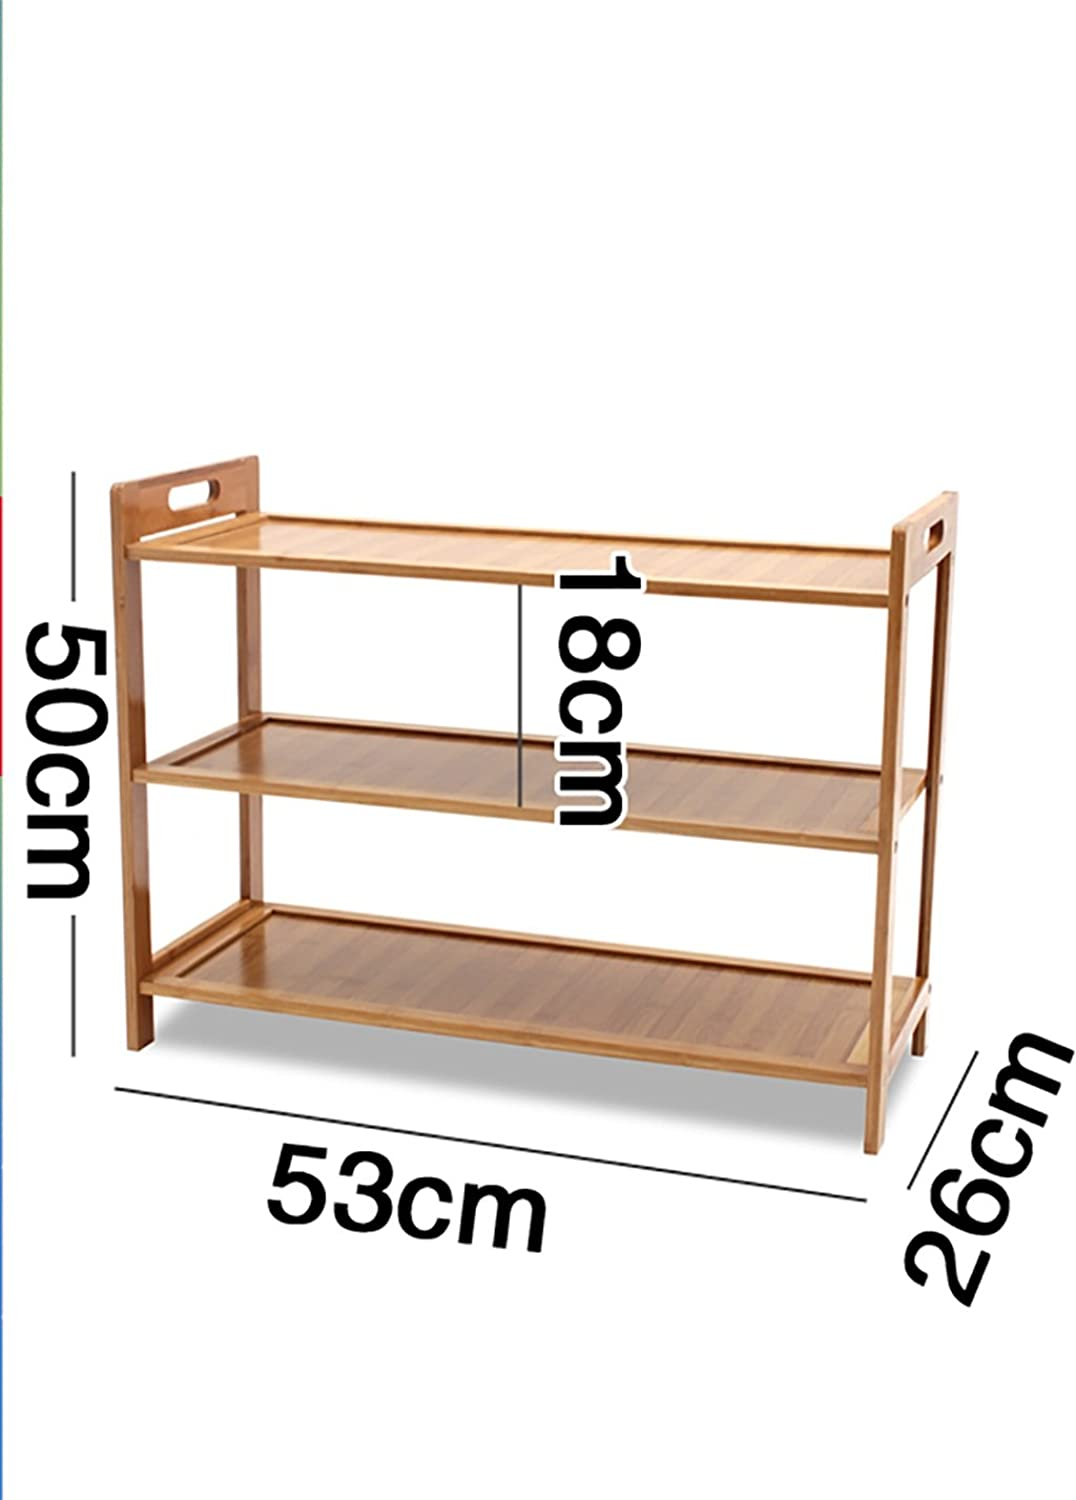 shoes Bench Organizing Rack shoes Racks Bamboo shoes Racks Solid Wood shoes cabinets Small shoes Racks Multi - Purpose Shelves (color   A, Size   53cm)